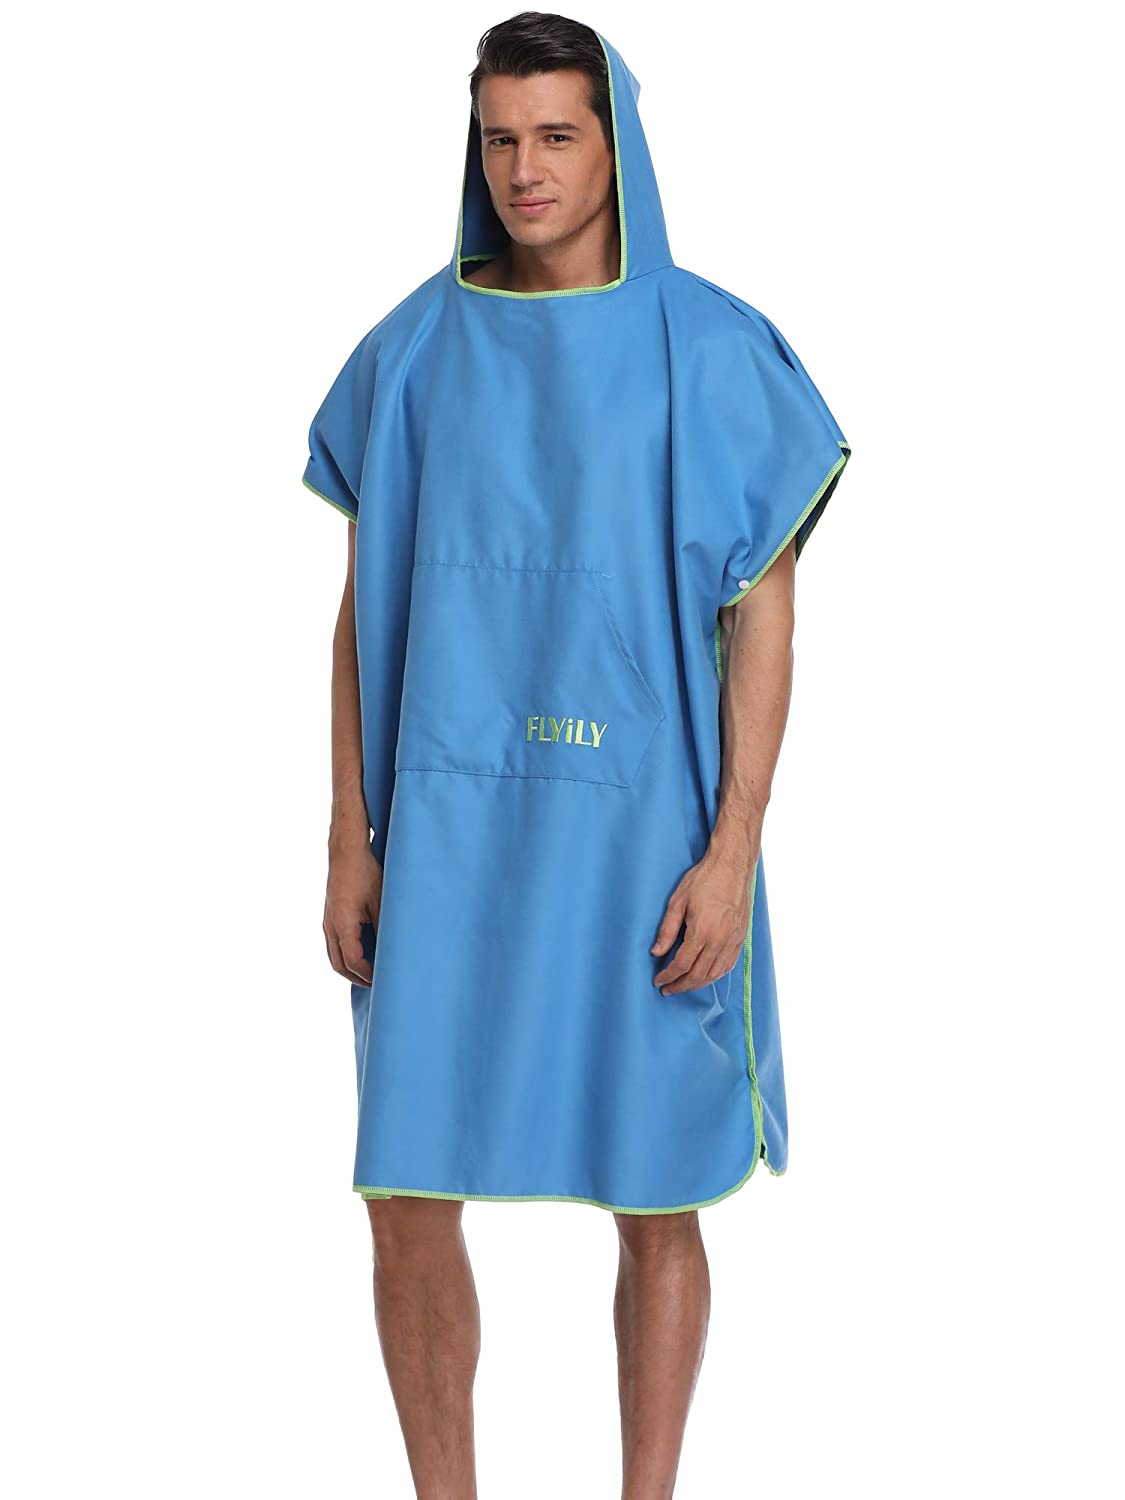 7866748e90 FLYILY Hooded Changing Robe Towel Poncho Light Weight Microfiber Surf  Wetsuit Changing with Pocket Beach Surfing Swimming Robe  Amazon.co.uk   Sports   ...